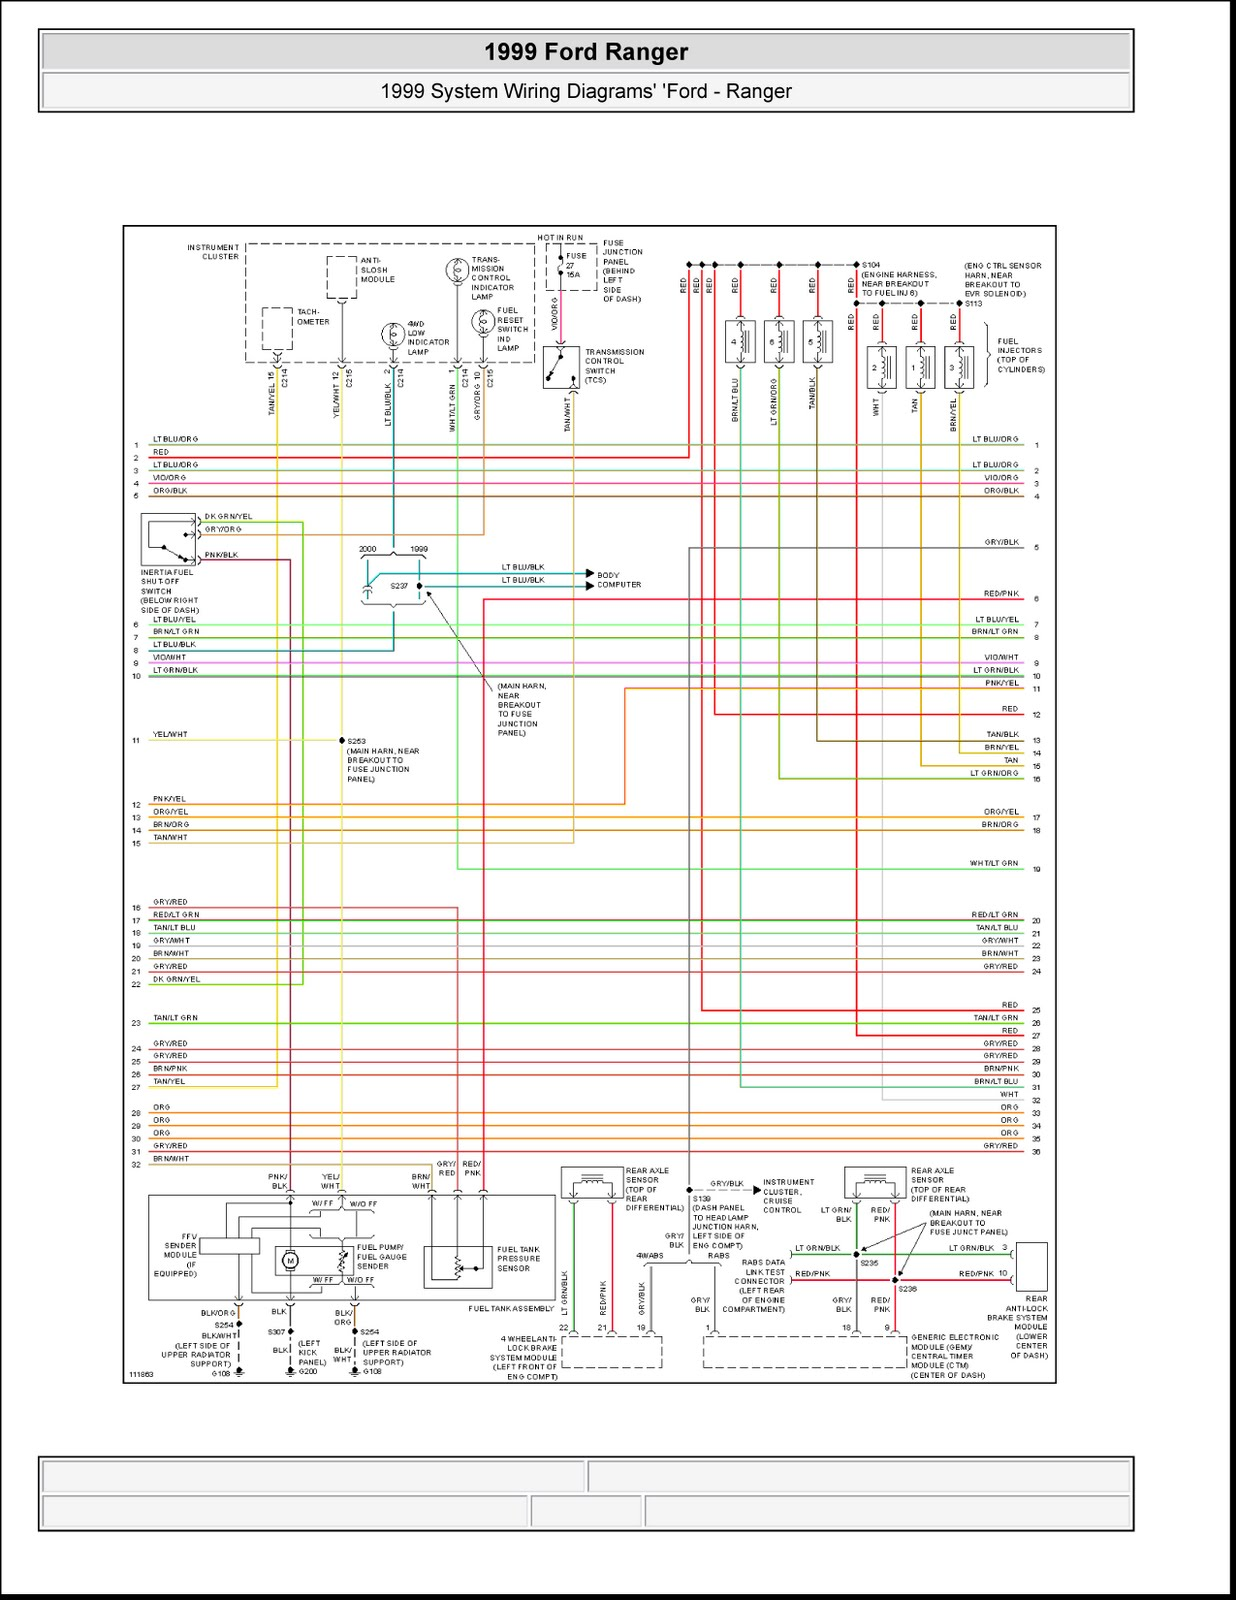 1999 ford explorer xlt stereo wiring diagram for two dual 4 ohm subs to mono 1 ranger radio 1995 free engine